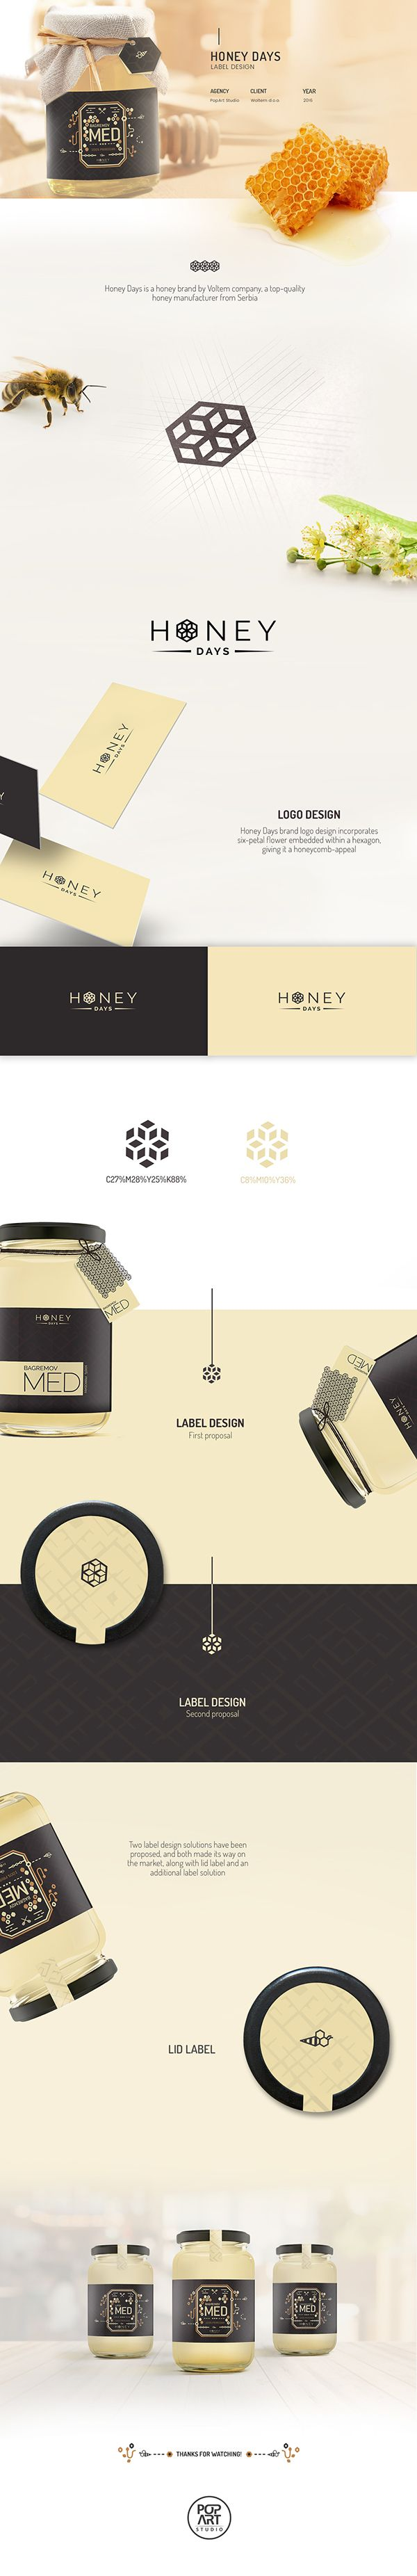 Logo design and label design for the packaging of Honey Days, a honey brand by Voltem company, a top-quality honey manufacturer from Serbia. The logo consists of a six-petal flower embedded within a hexagon, giving it a honeycomb appeal. Two packaging labels have been proposed, and both accepted, along with lid label and additional label design solutions. #branding #graphicdesign #packaging #packagingdesign #honey #logodesign #labels